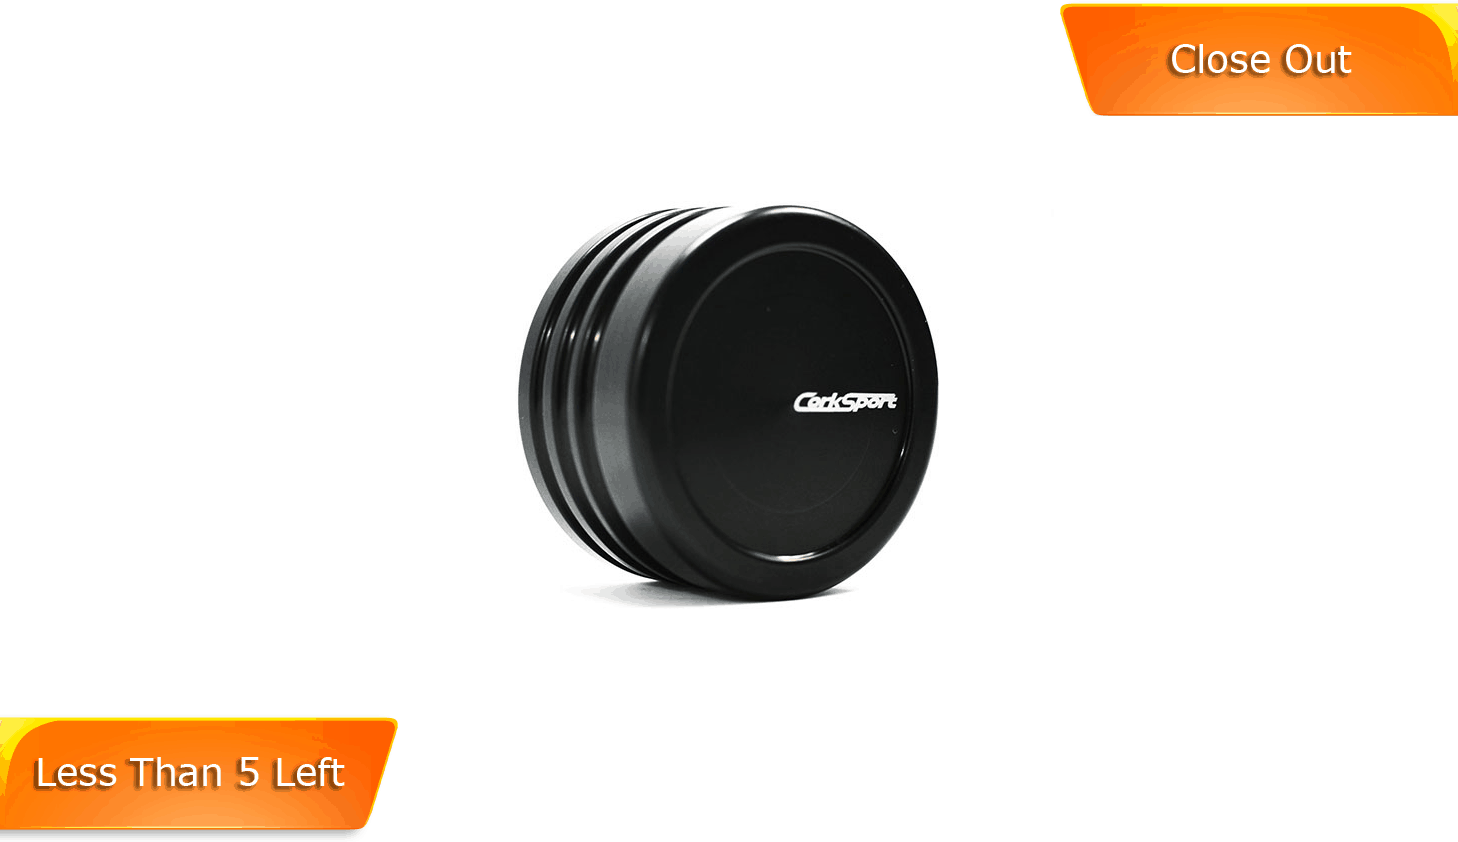 Add a personal touch to your interior with the CorkSport Command Wheel Cover.